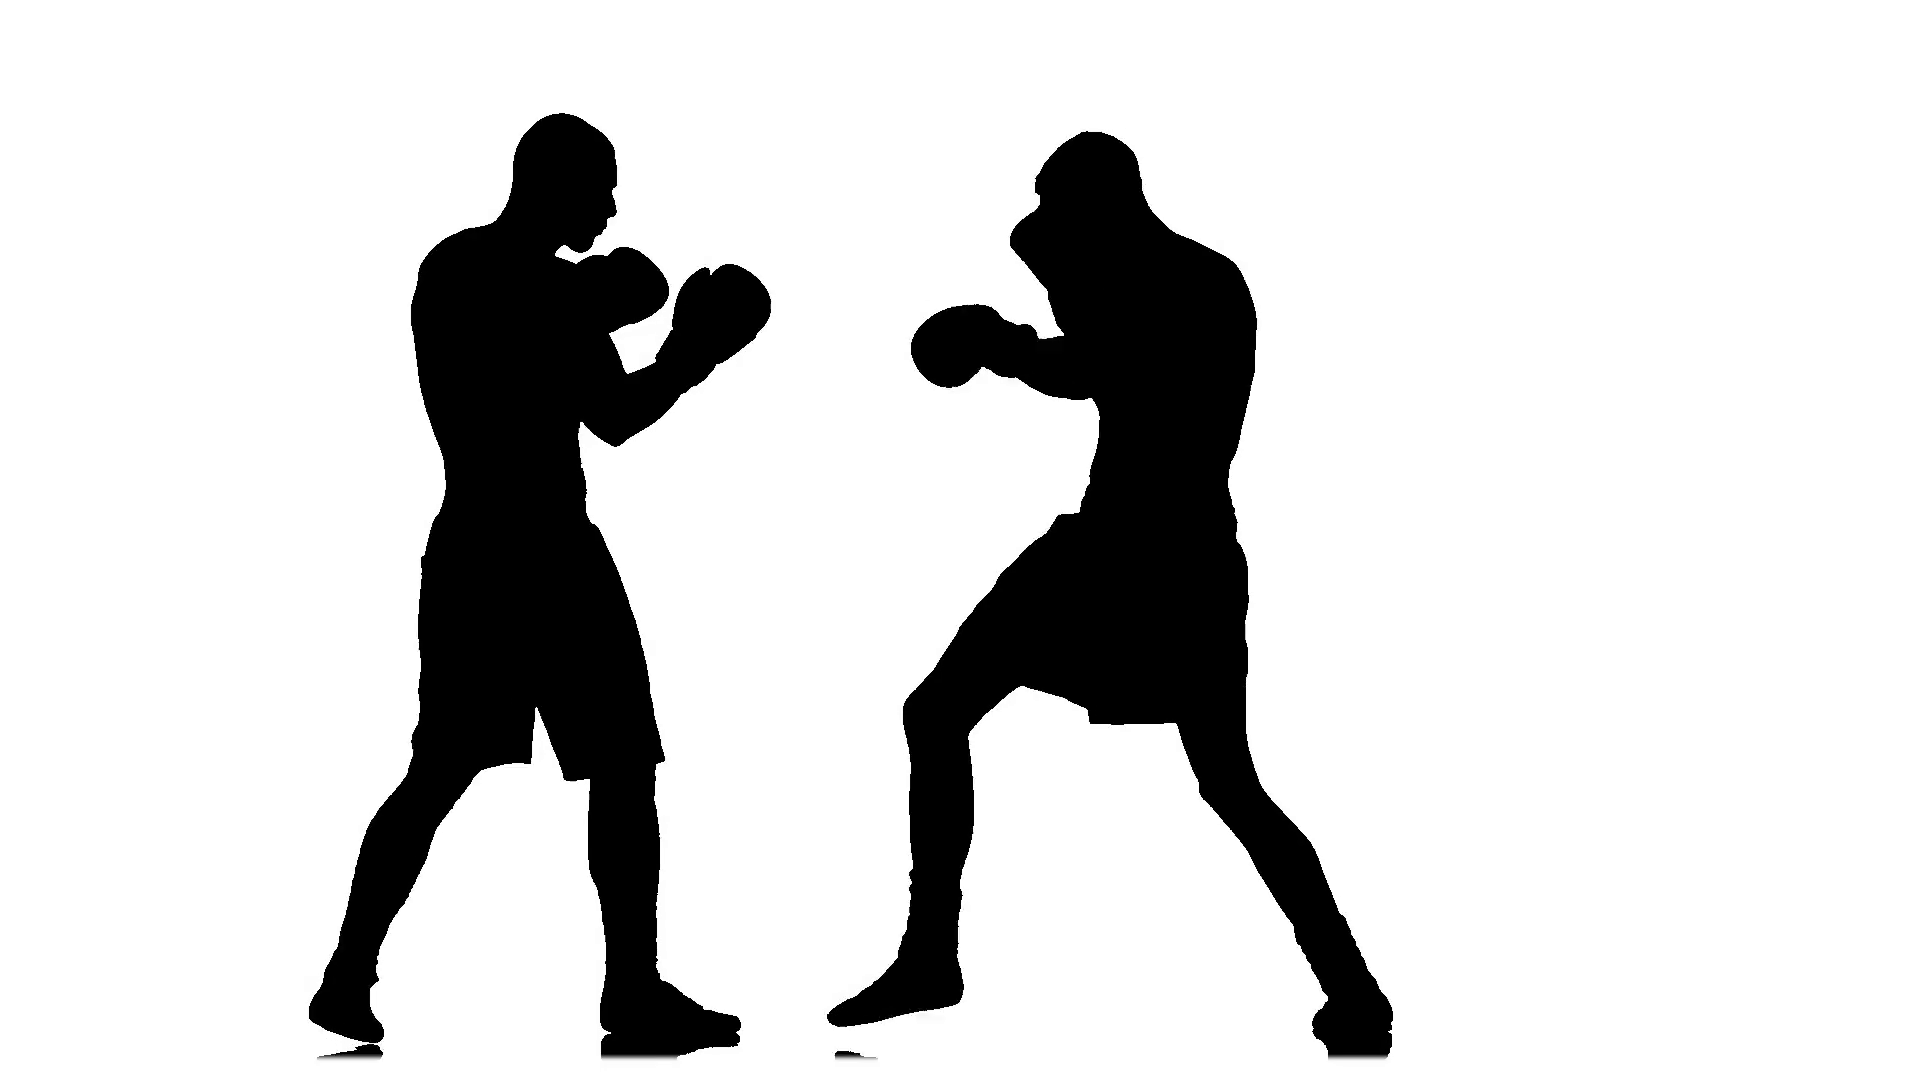 1920x1080 Low Blow In A Boxing Match Between Two Sportsmen. Silhouette Stock